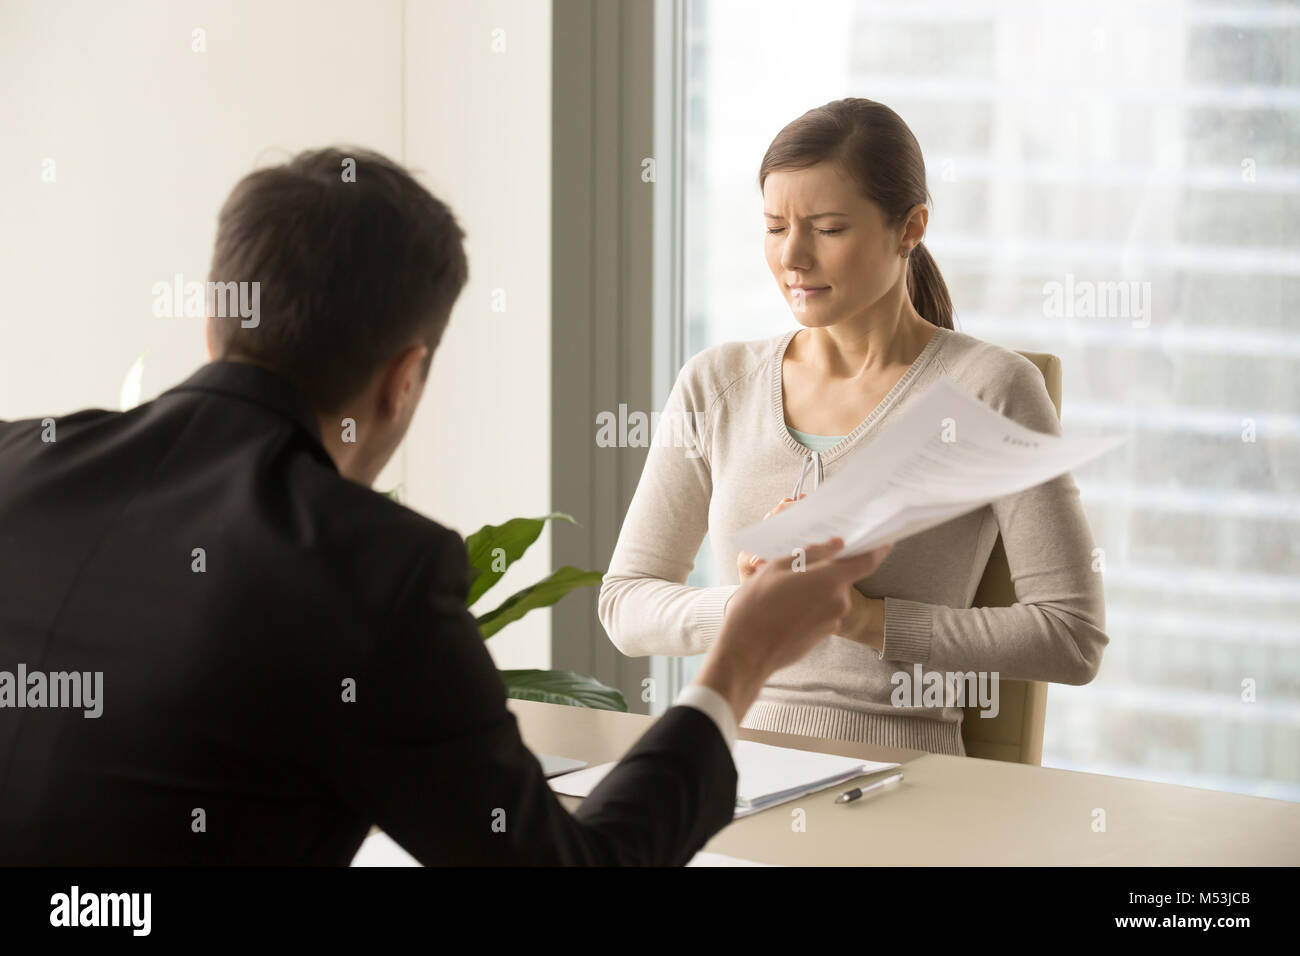 Angry boss scolding scared female employee - Stock Image